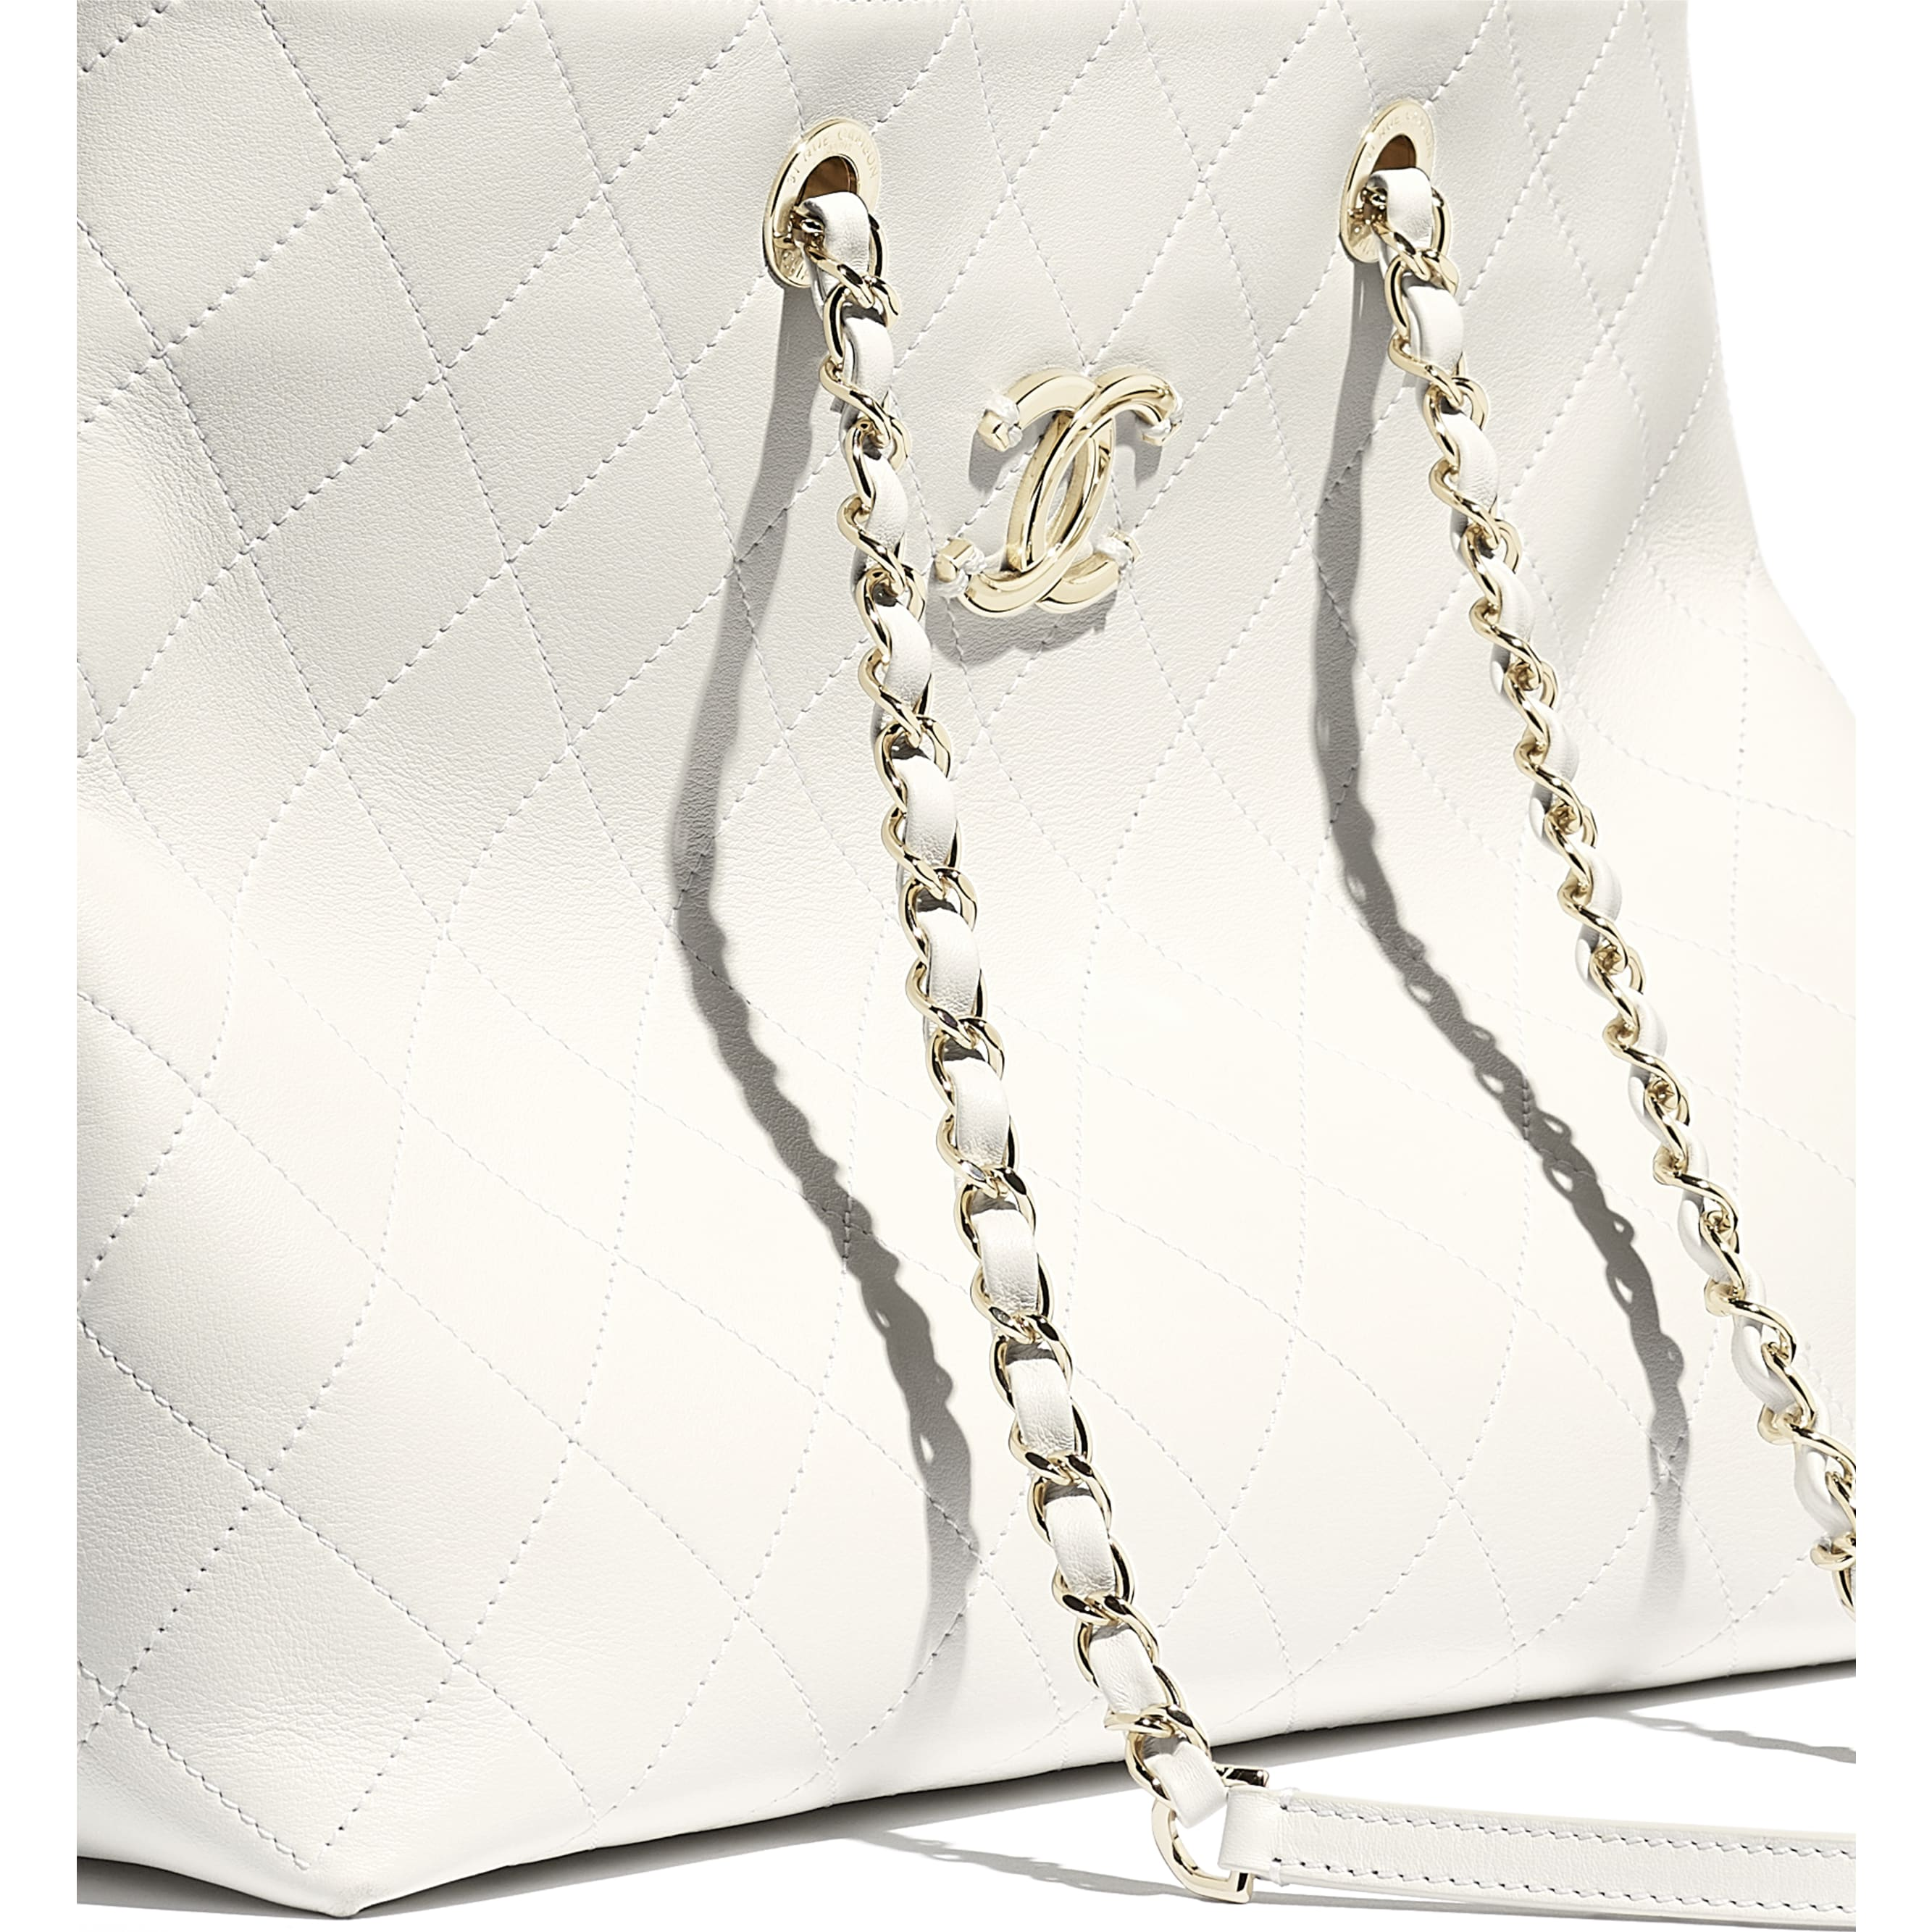 Shopping Bag - White - Calfskin & Gold-Tone Metal - CHANEL - Extra view - see standard sized version